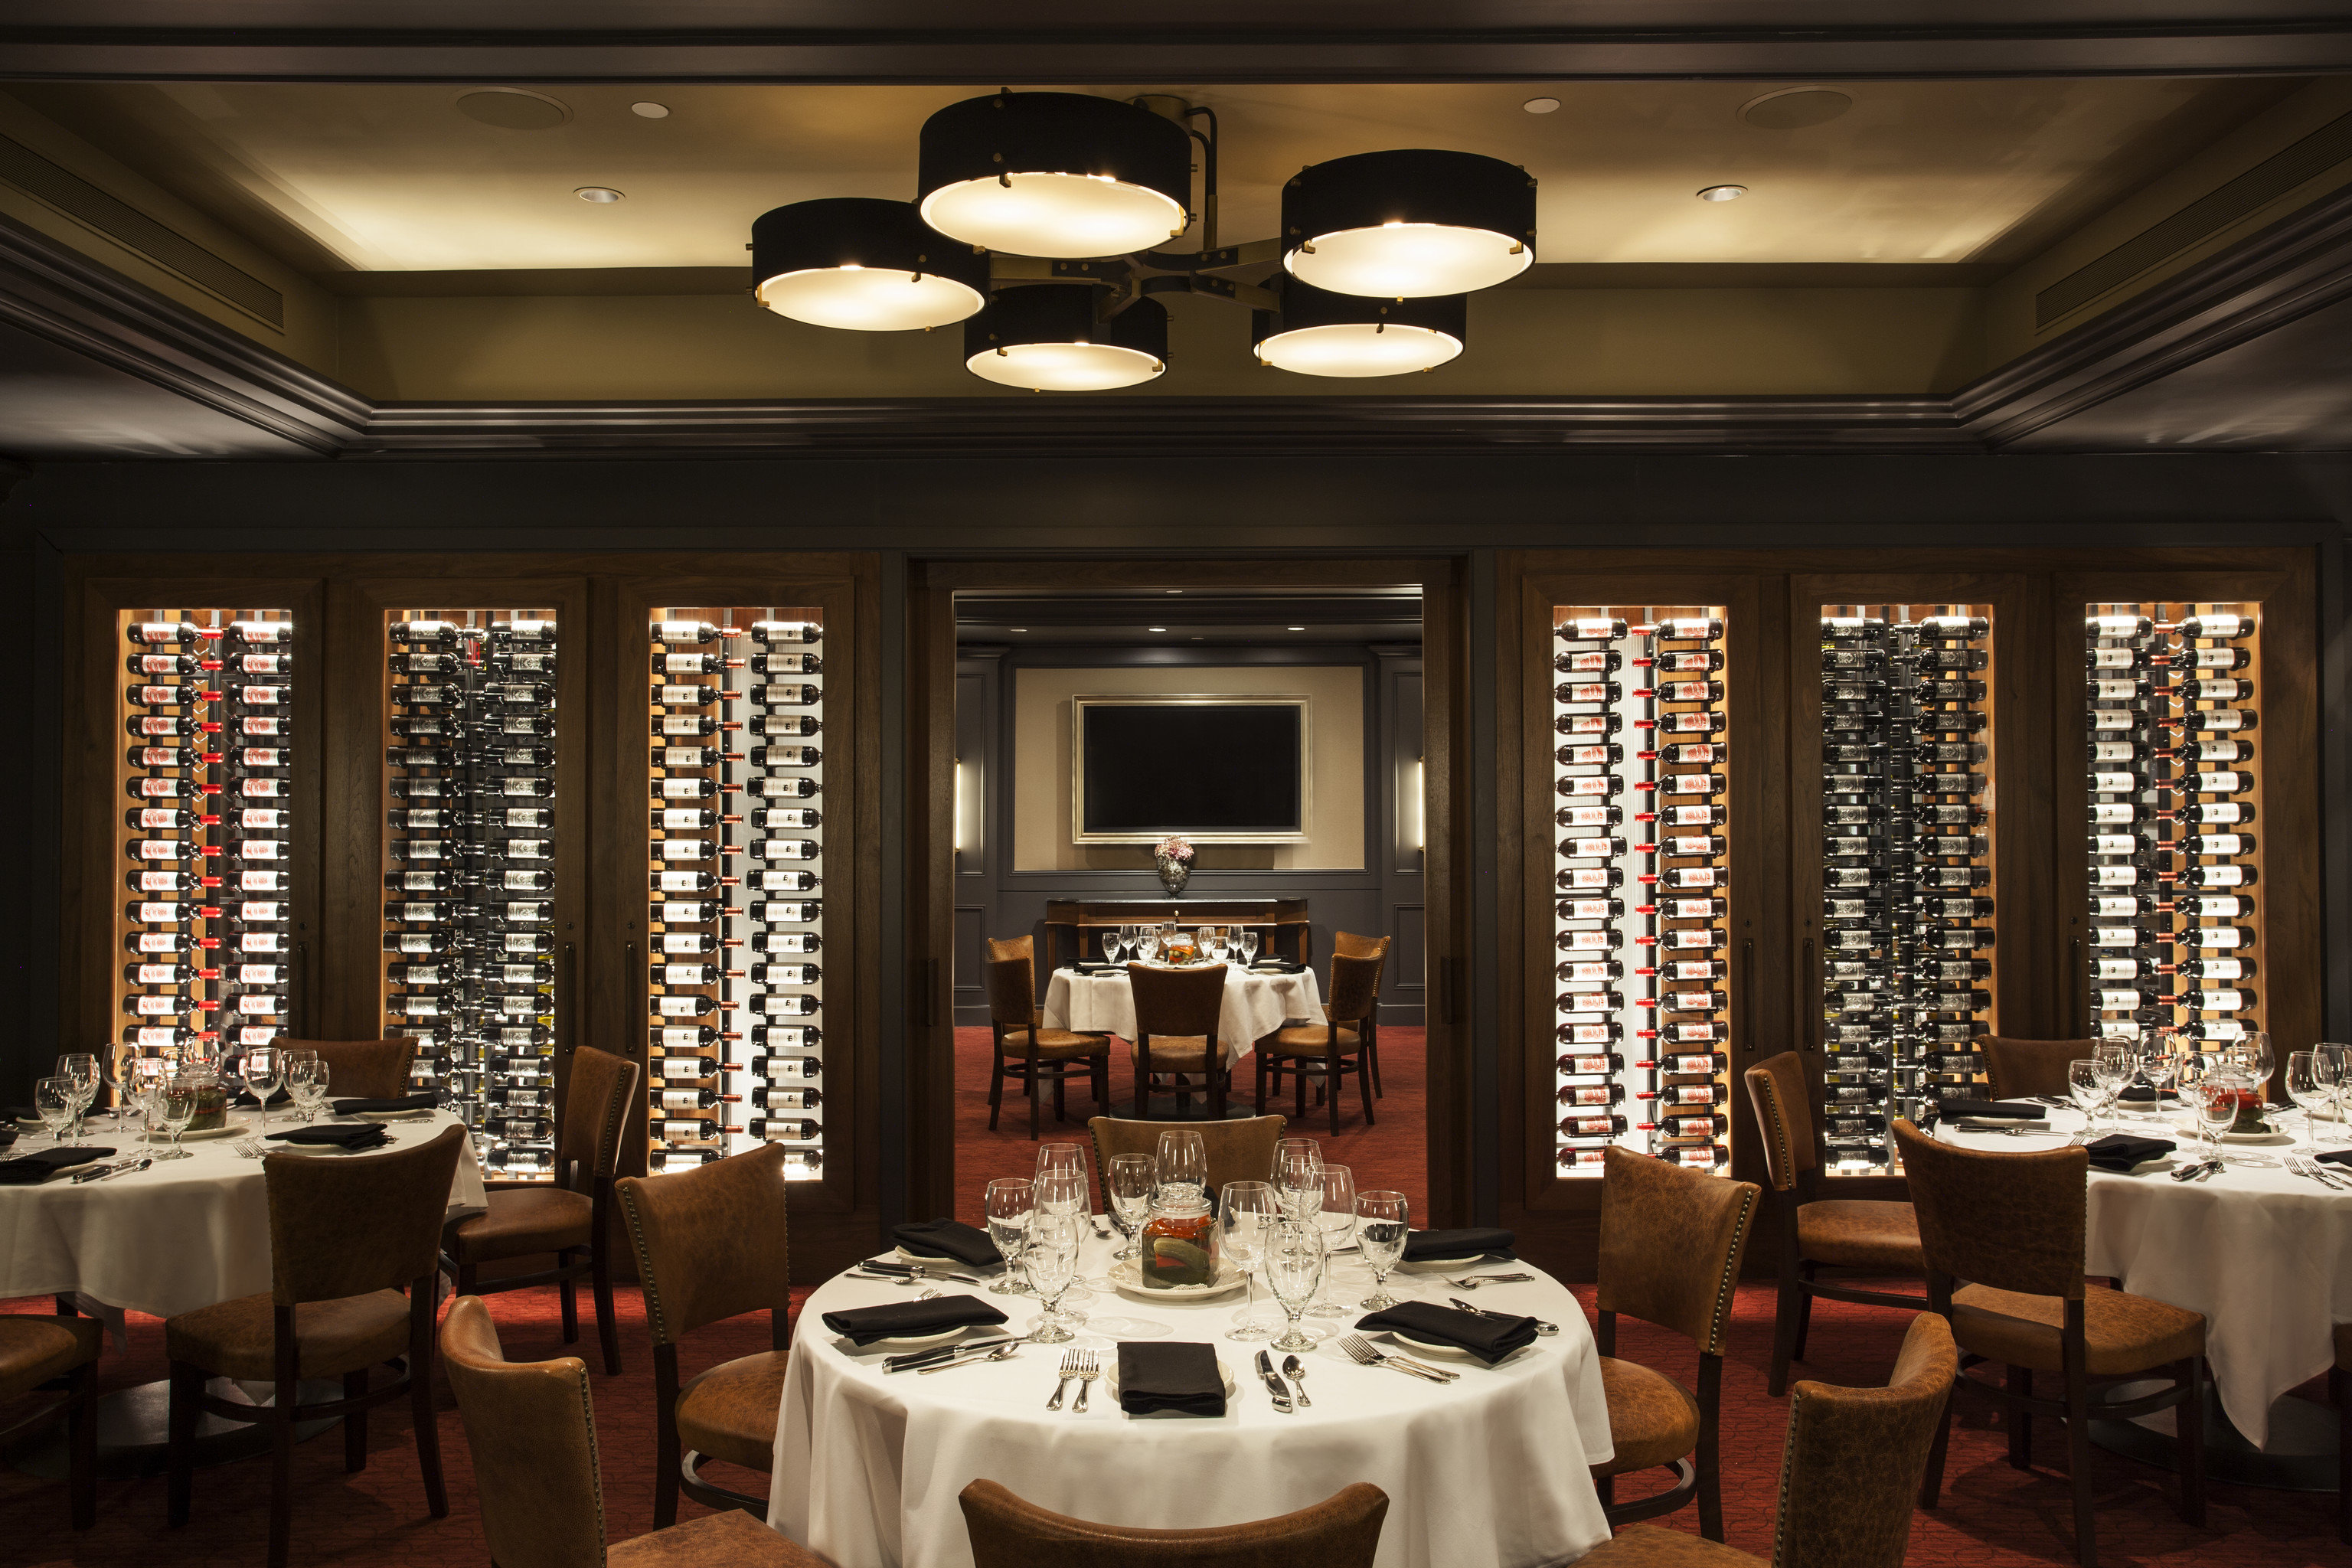 Hotels Romance indoor table ceiling restaurant window interior design function hall dining room hotel fancy set furniture Island several